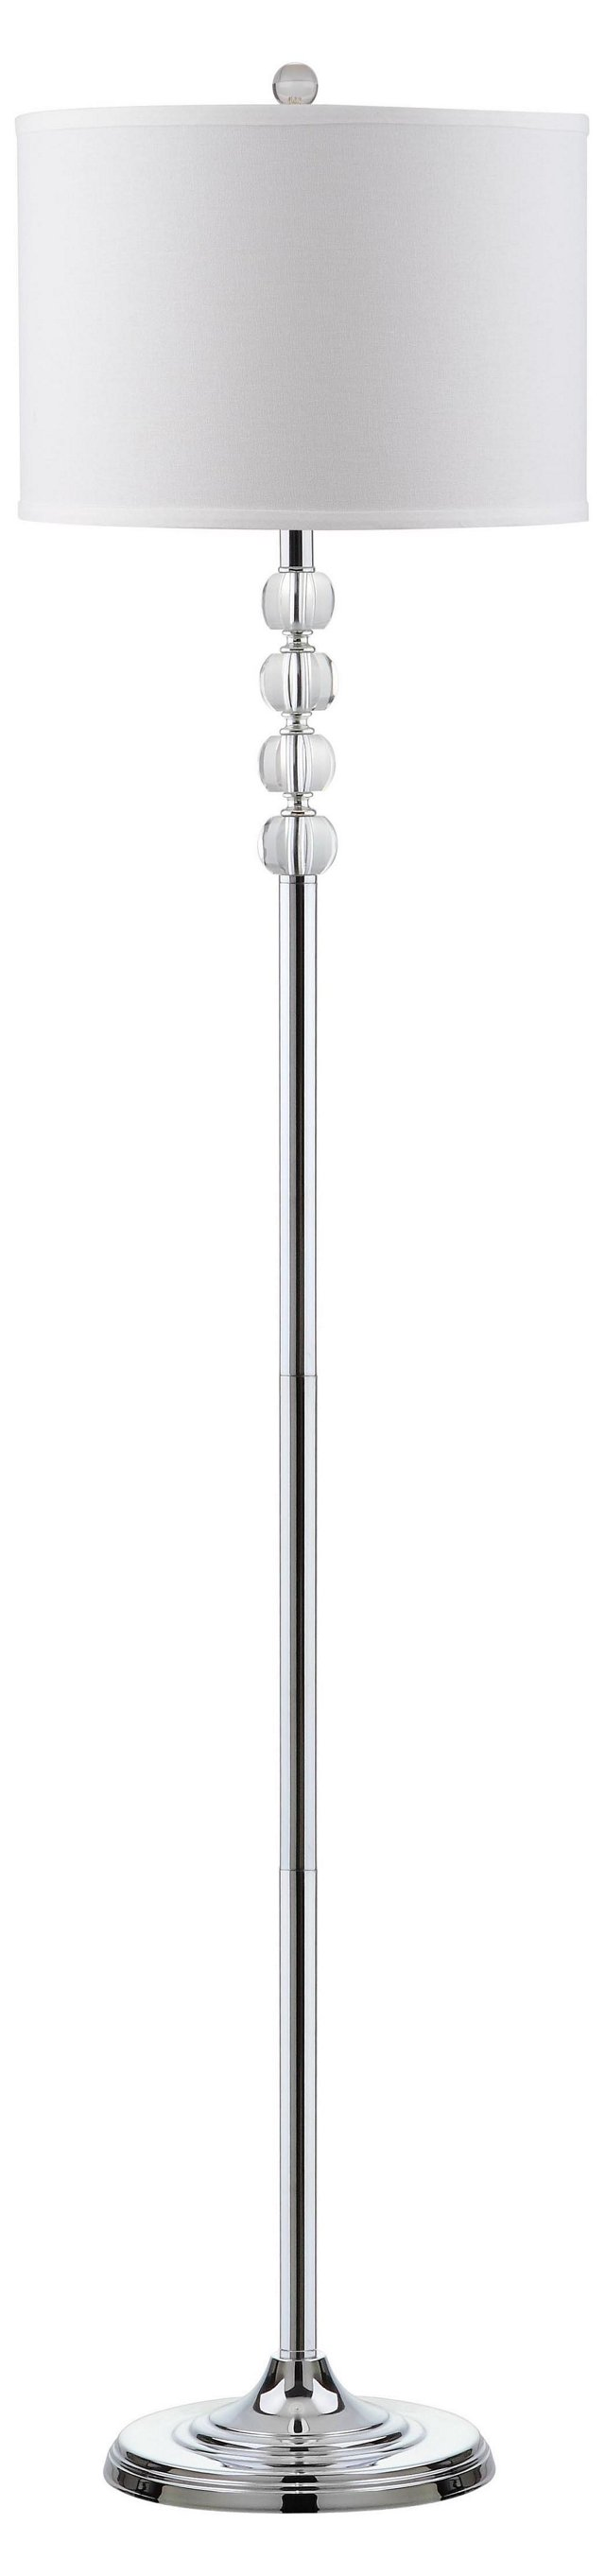 Vendome Floor Lamp, Crystal/Chrome